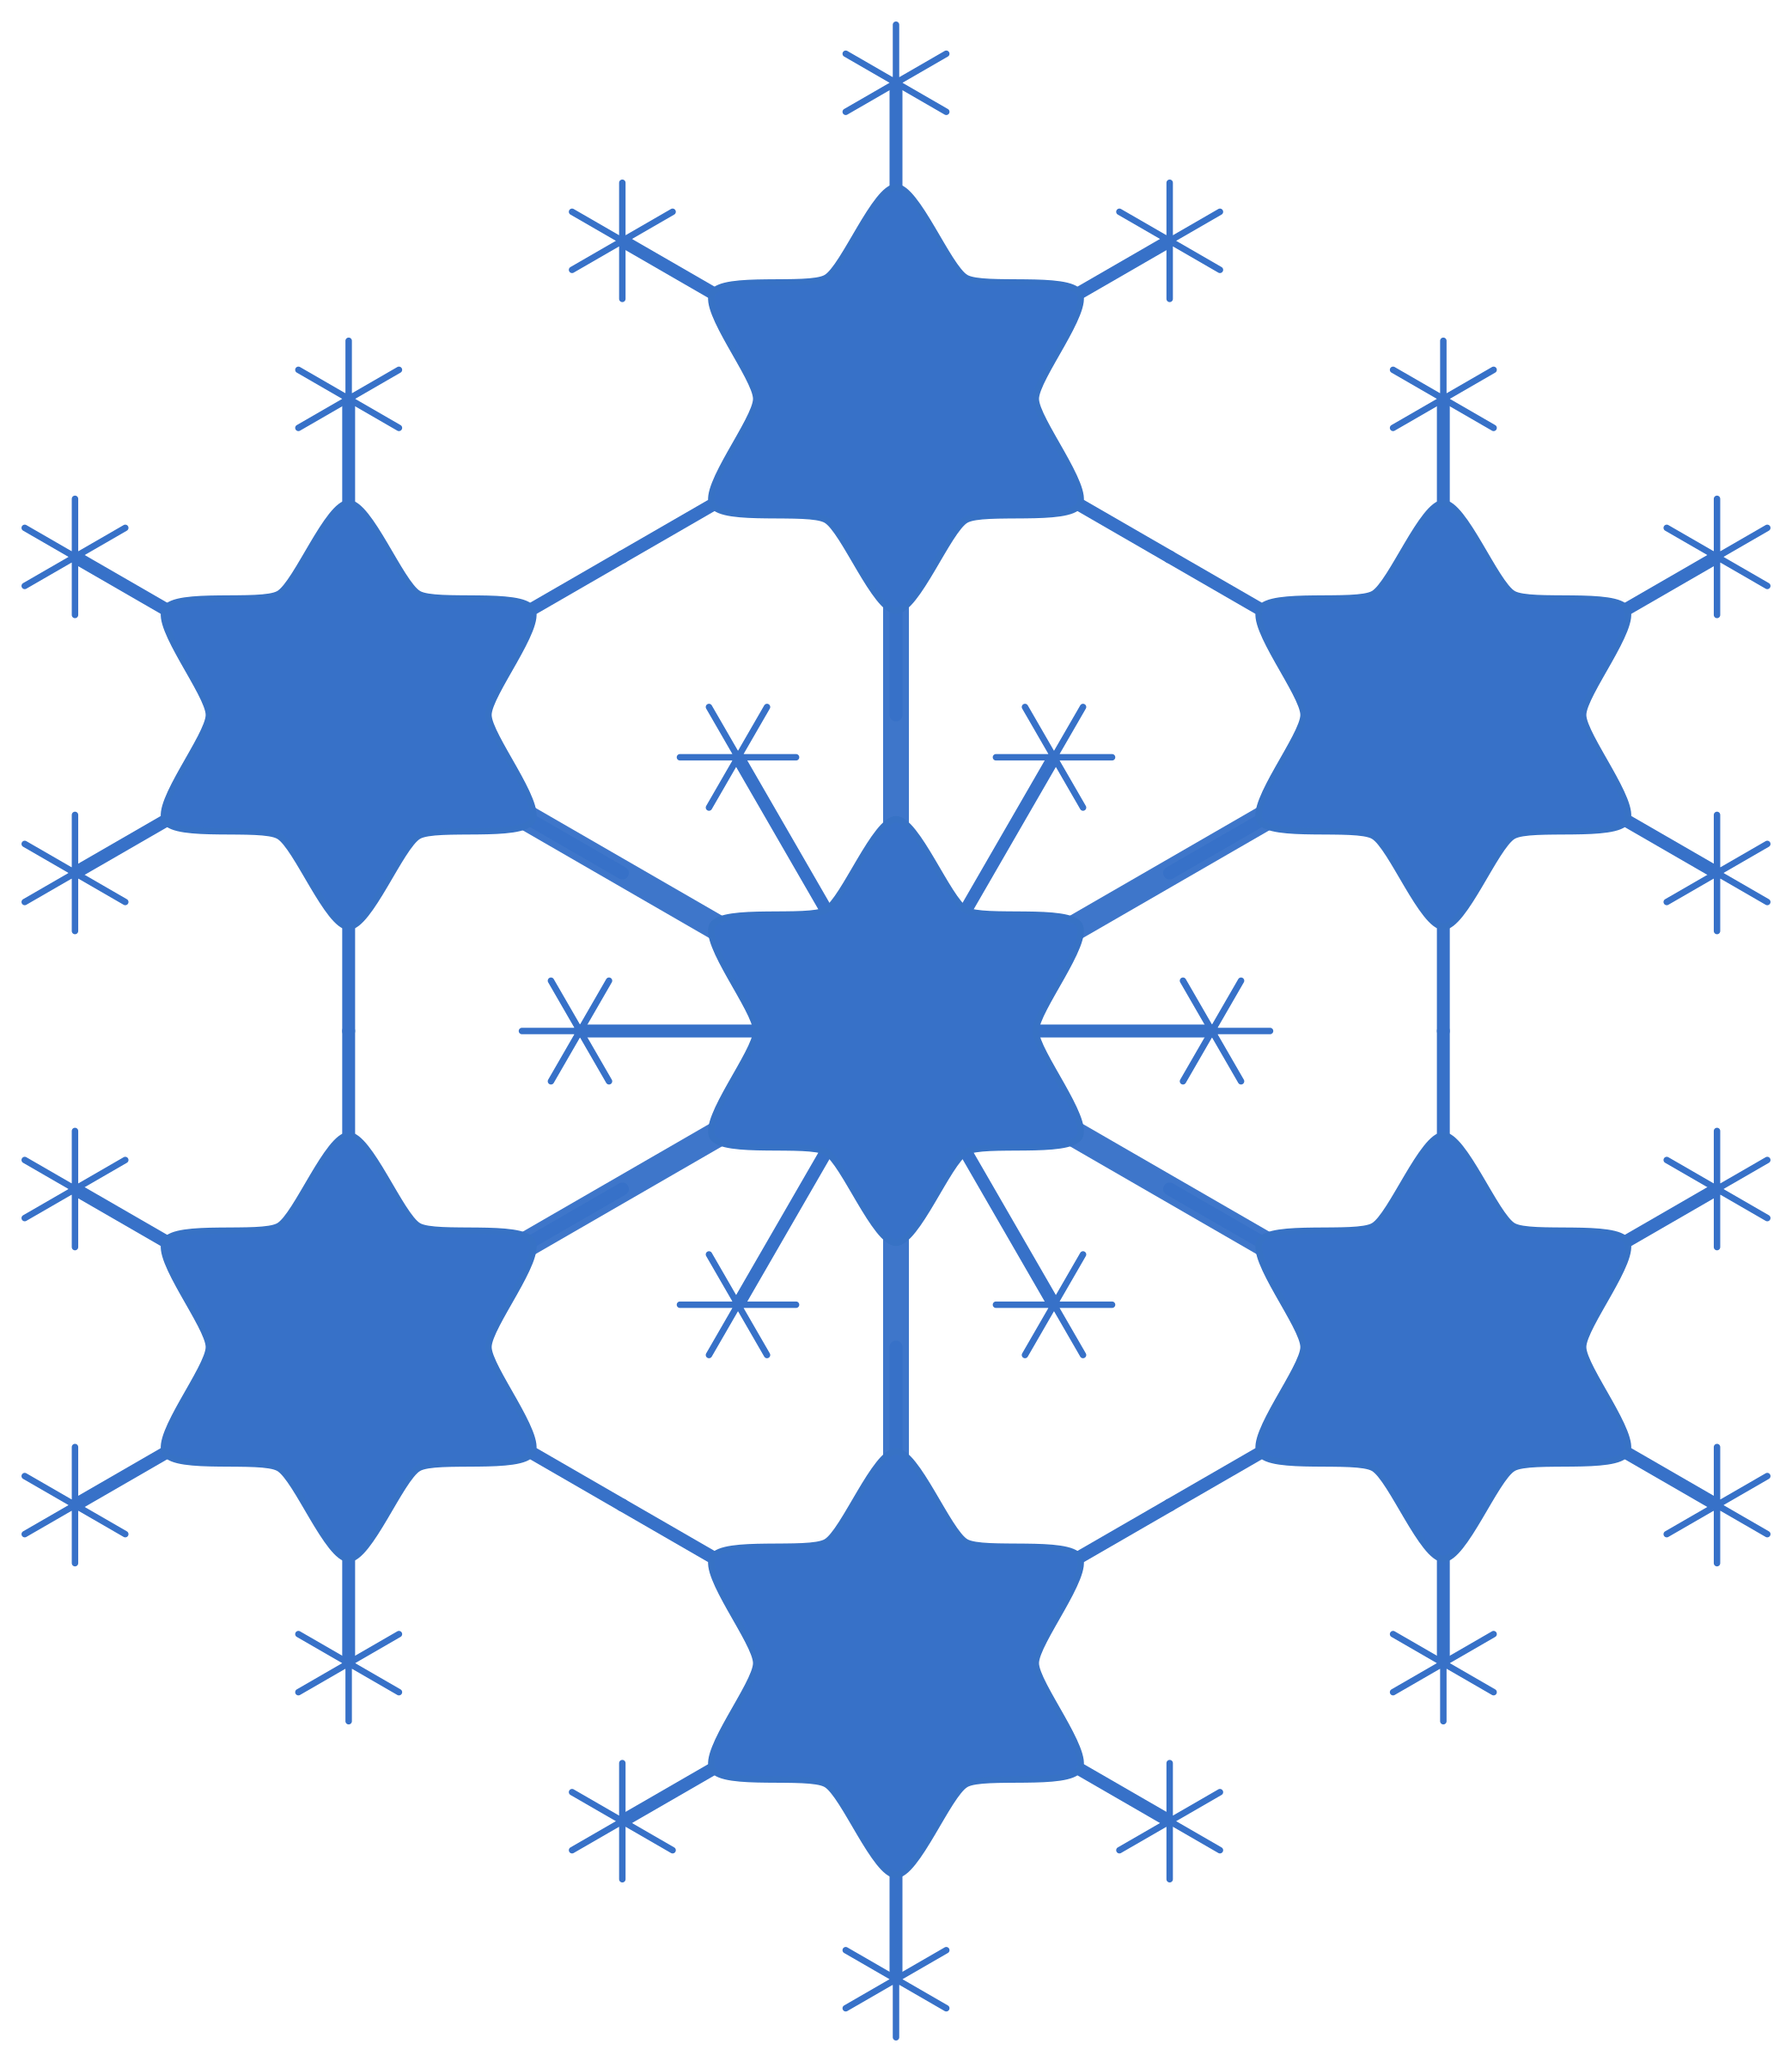 Snow flake by teppo